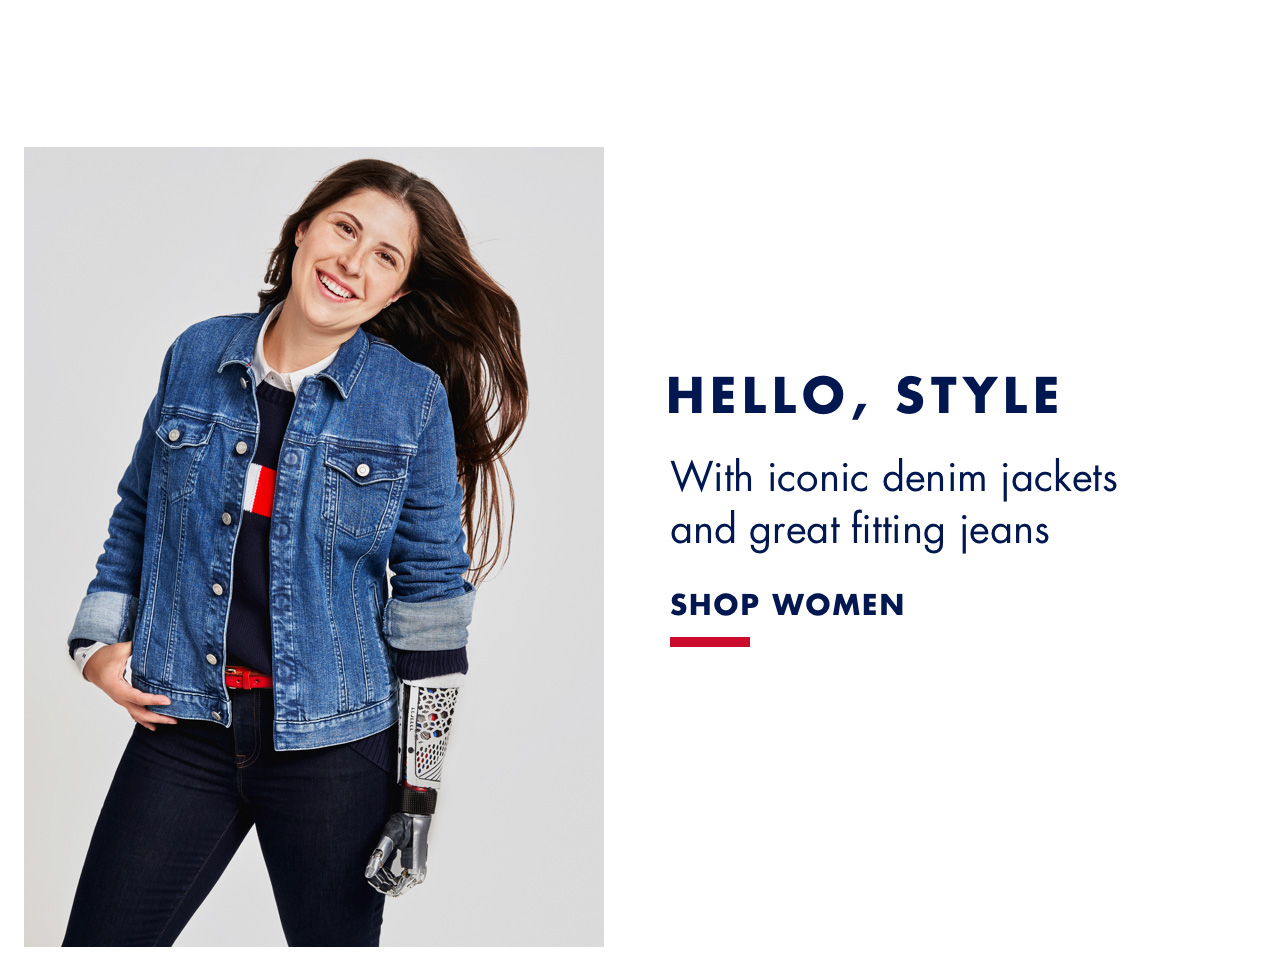 HELLO STYLE With iconic denim jackets and great fitting jeans SHOP WOMEN